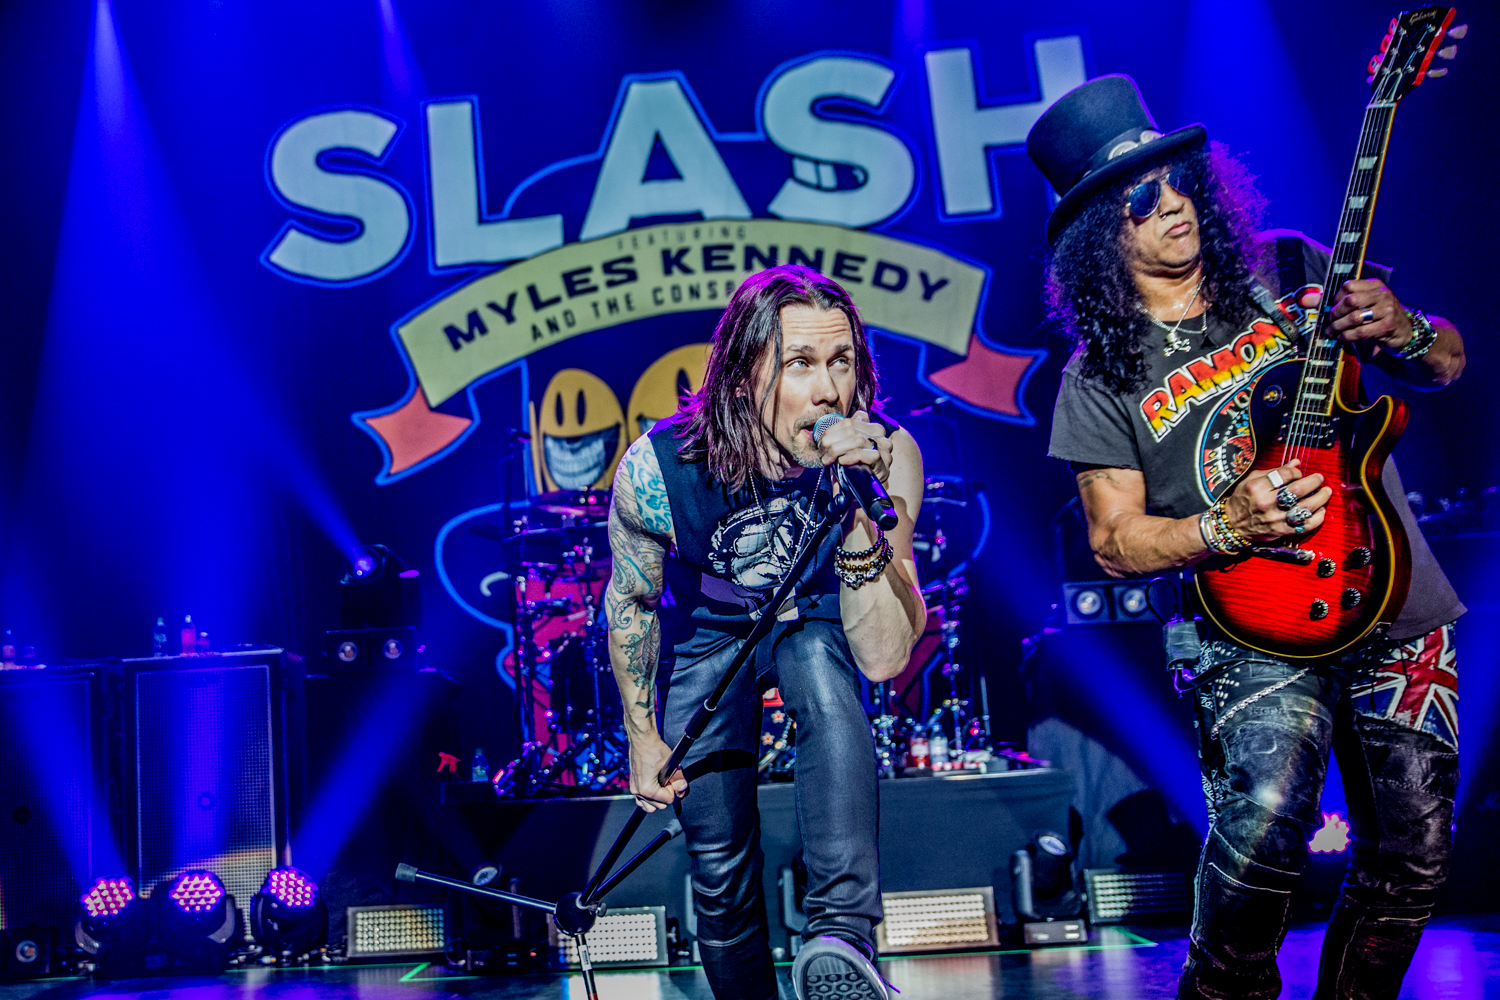 20190223_Slash ft. Myles Kennedy and The Conspirators_Koninklijk Circus-14